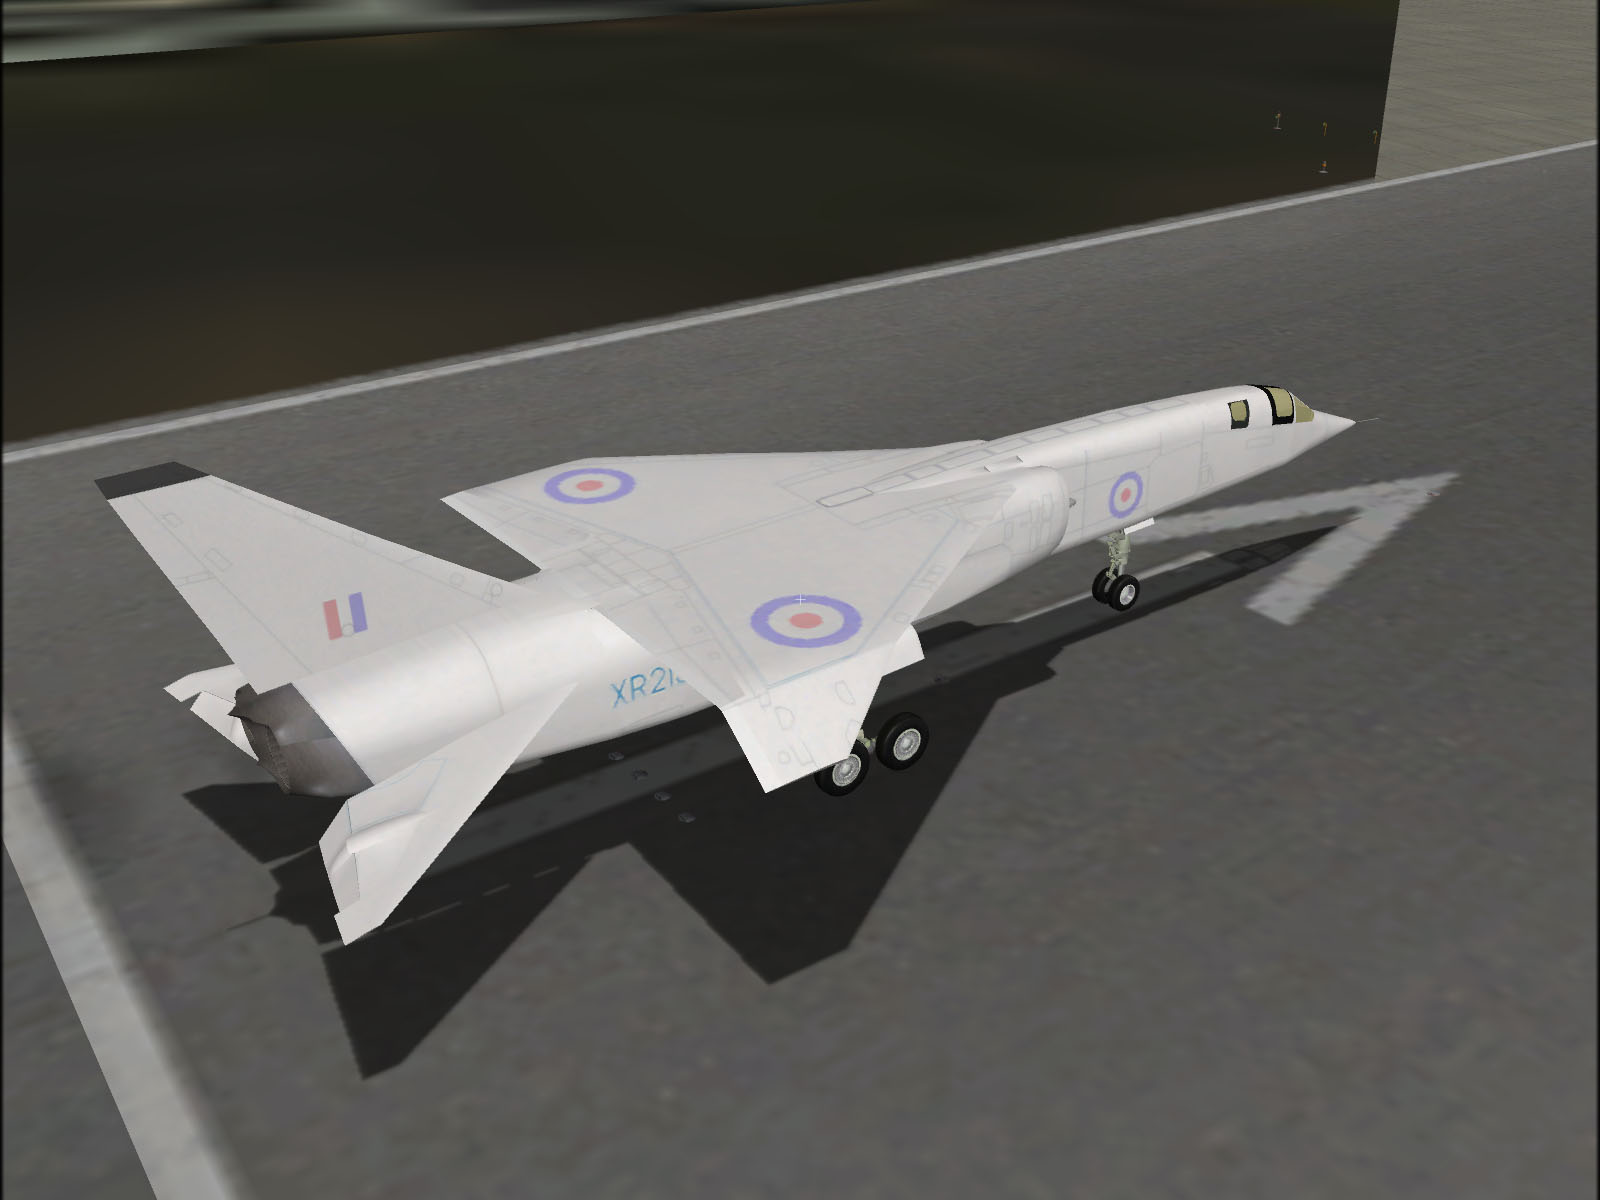 BAC TSR2 | UK X-Plane Developers Wiki | FANDOM powered by Wikia